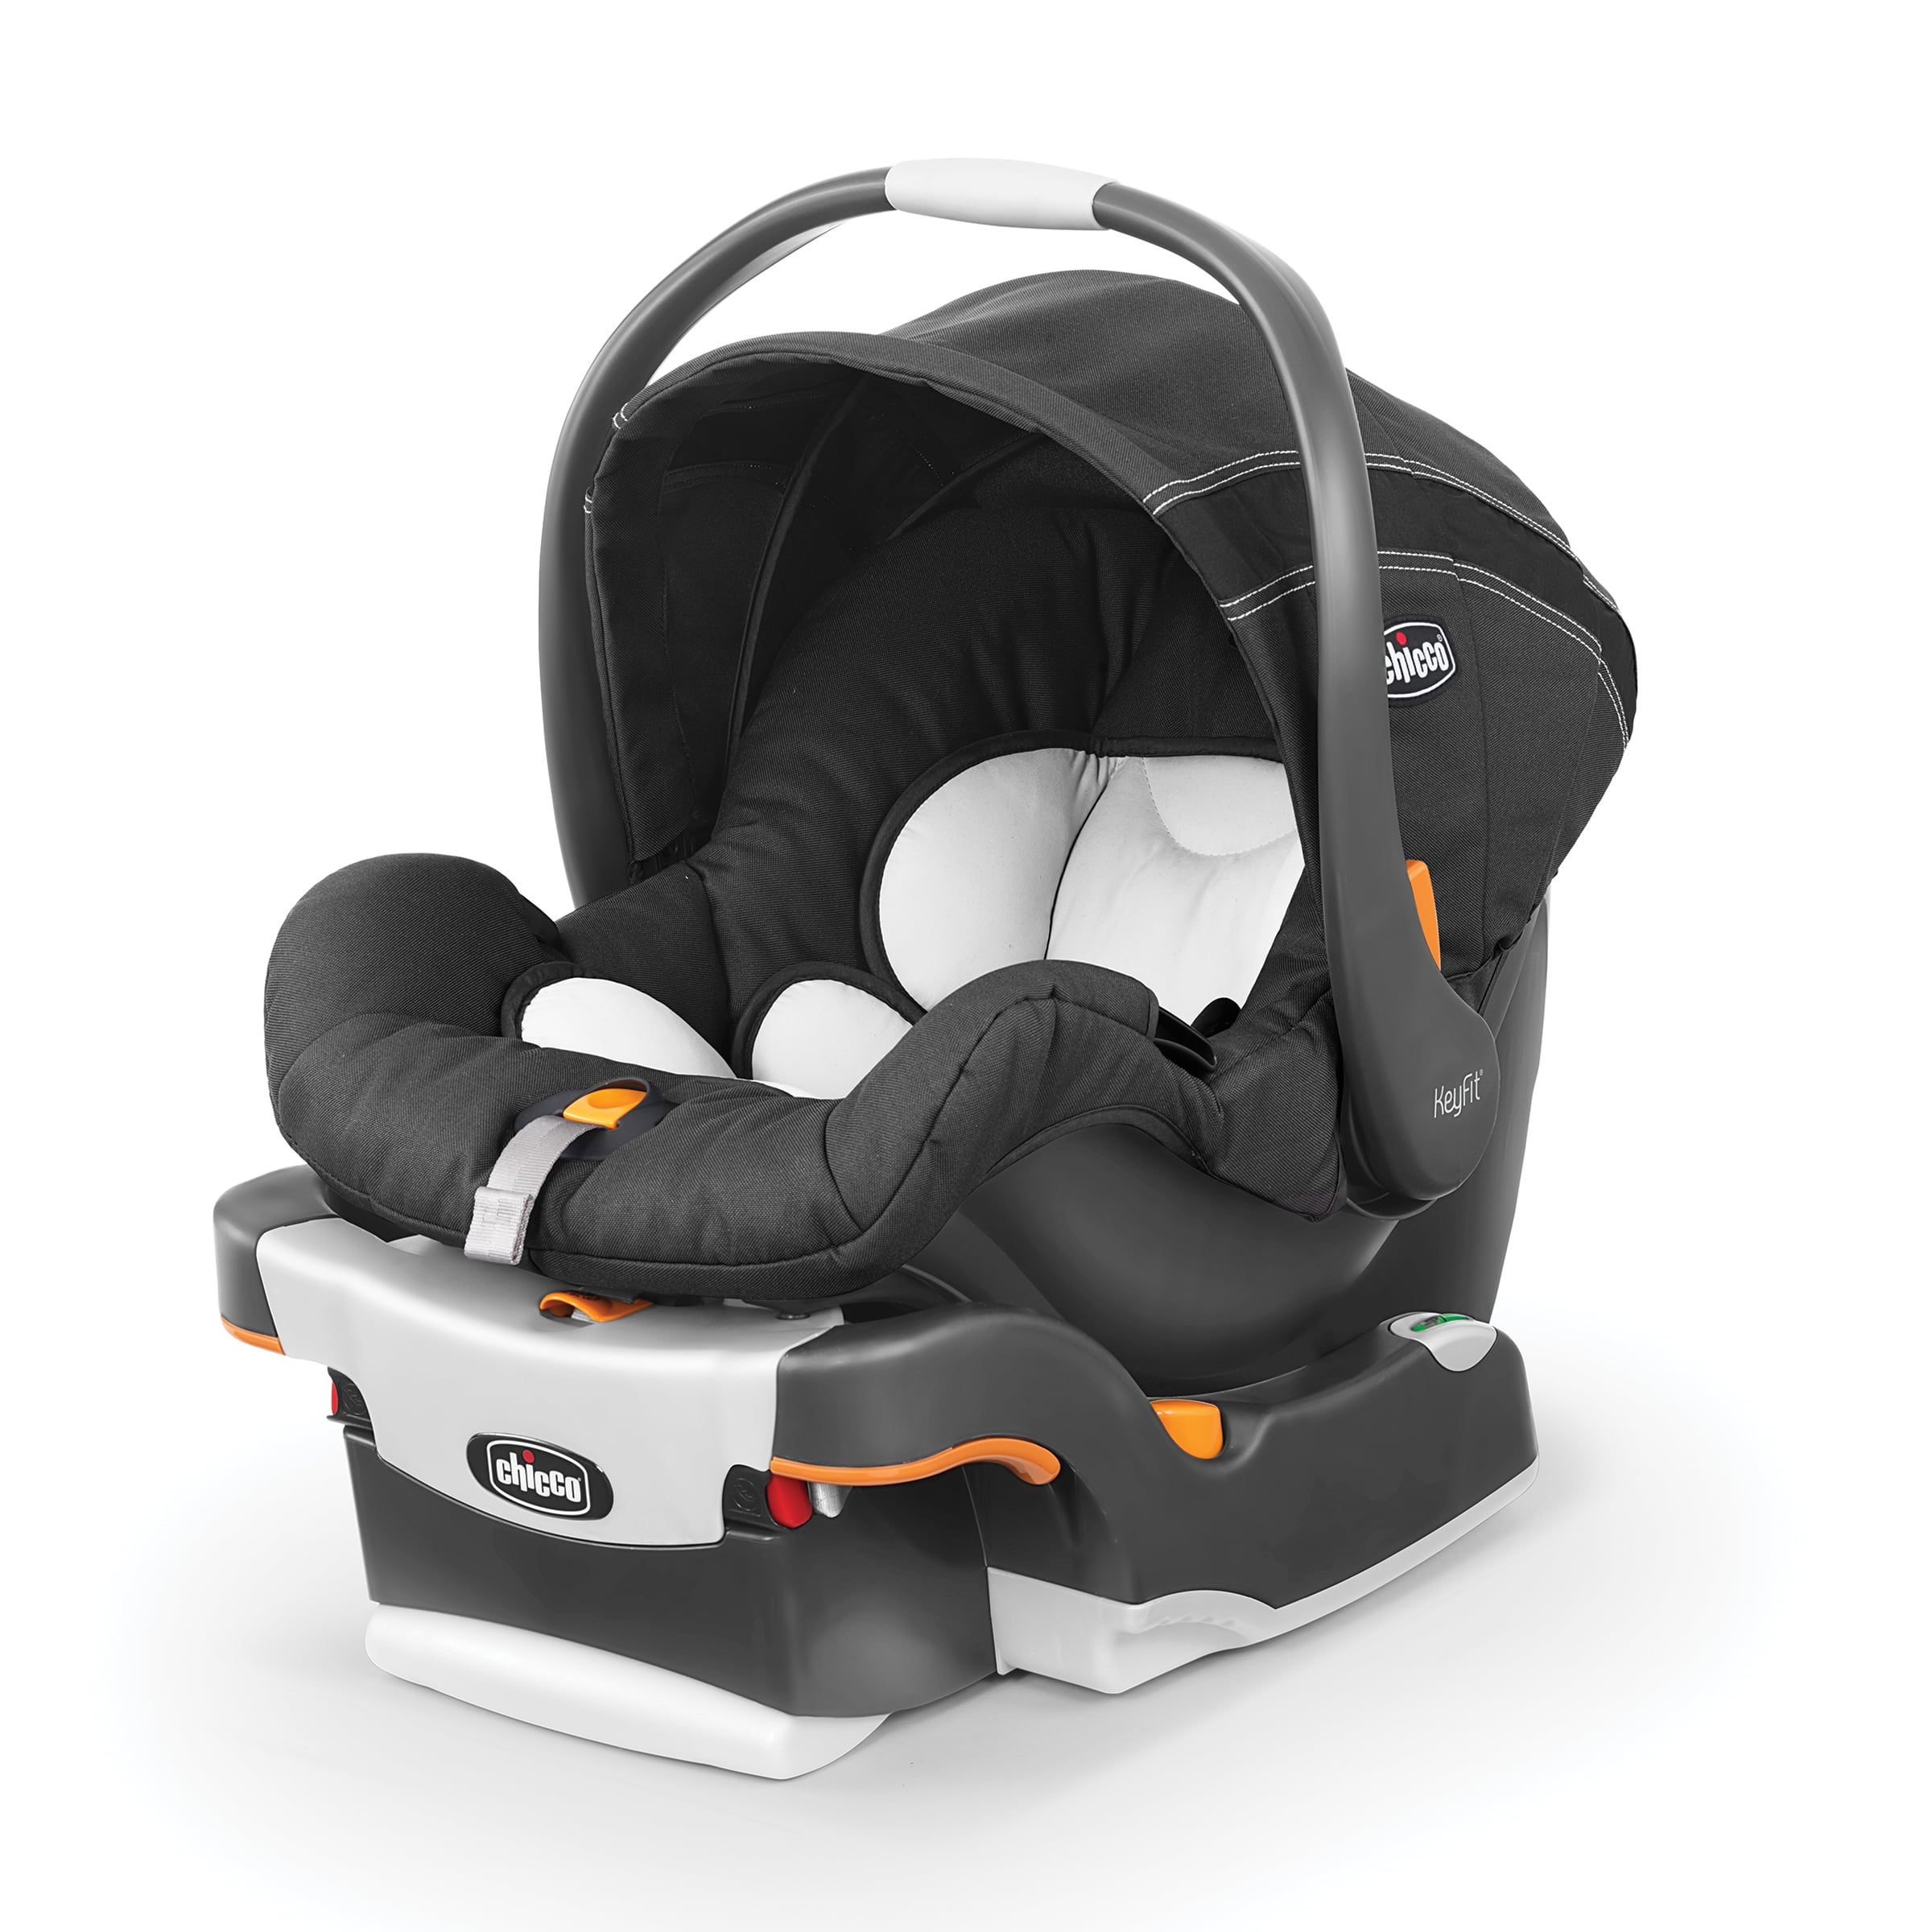 NOT FOR SALE* Chicco Keyfit Infant Car Seat